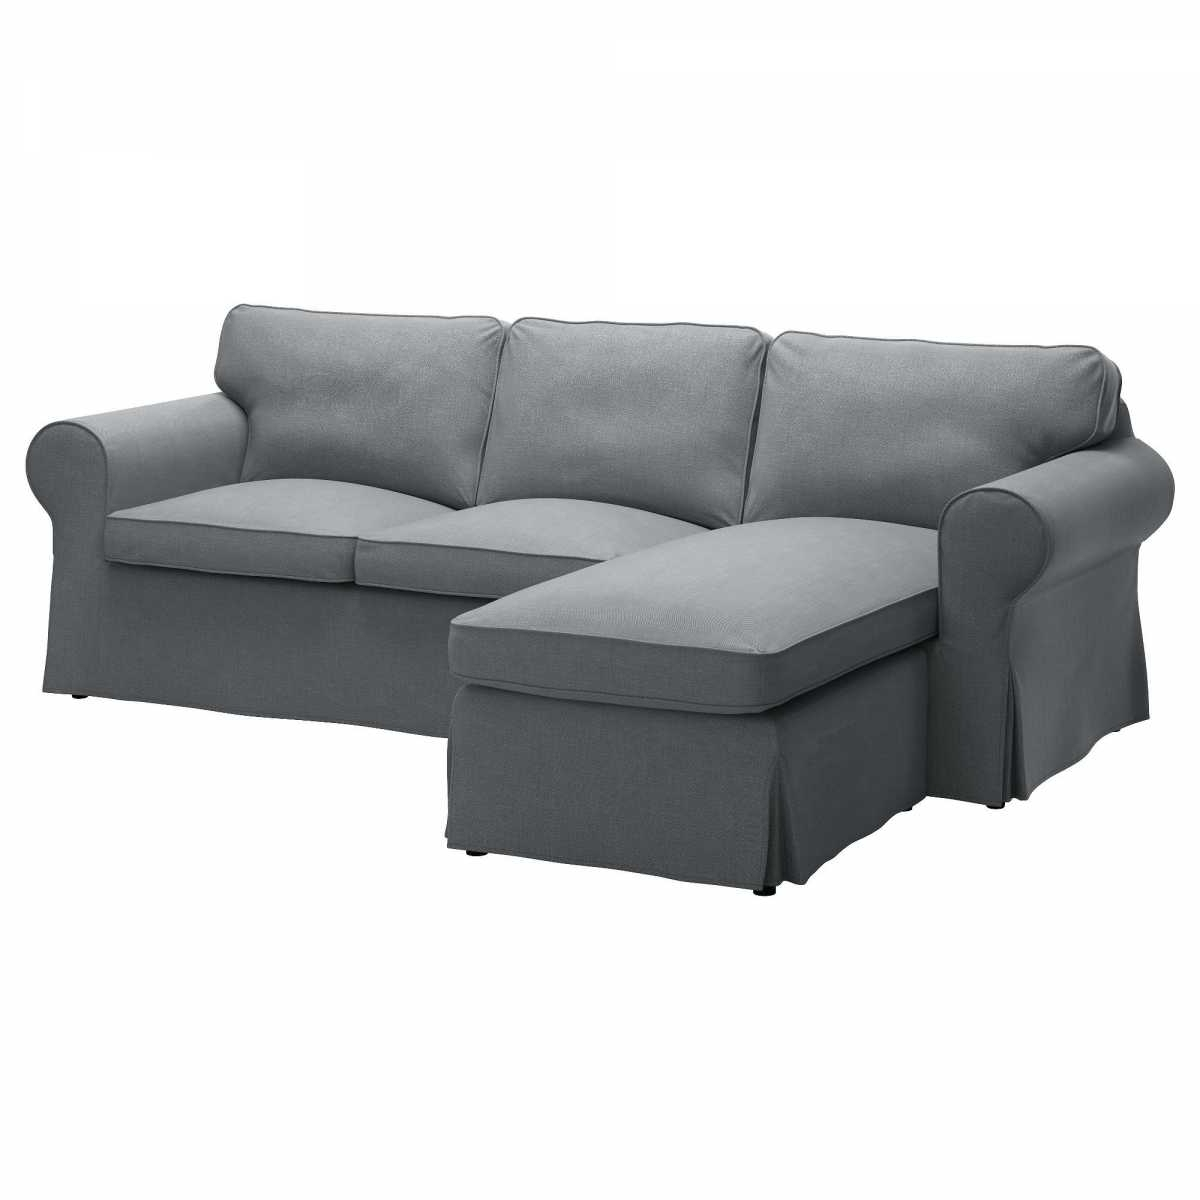 Newest Sleeper Chaise Lounges Inside Loveseat : Chaise Loveseat New Small Loveseat With Chaise Lounge (View 9 of 15)